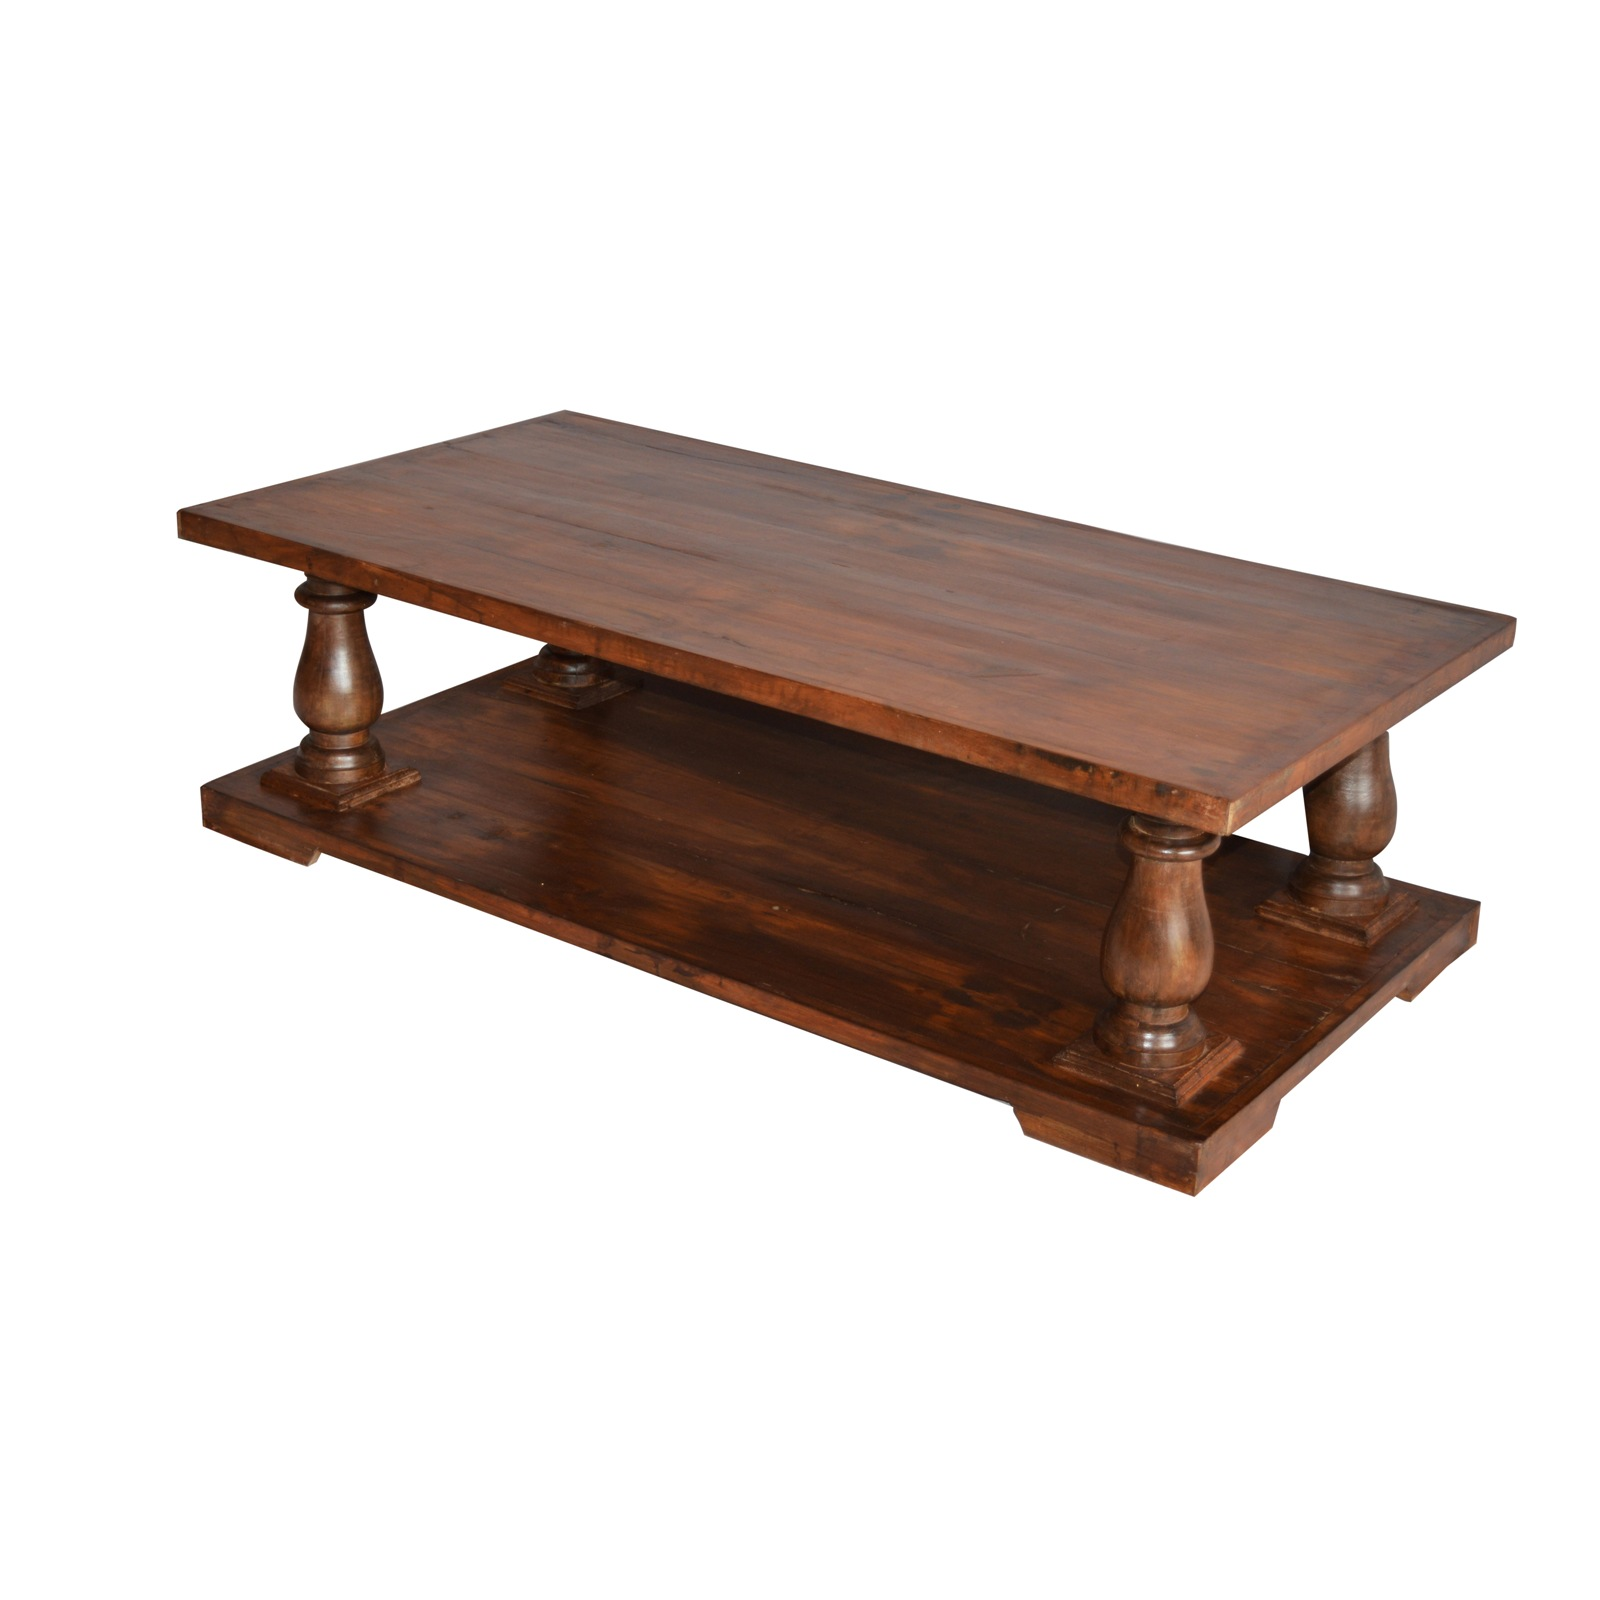 Wooden Coffee Table Old Teak Wood Top Indian Furniture